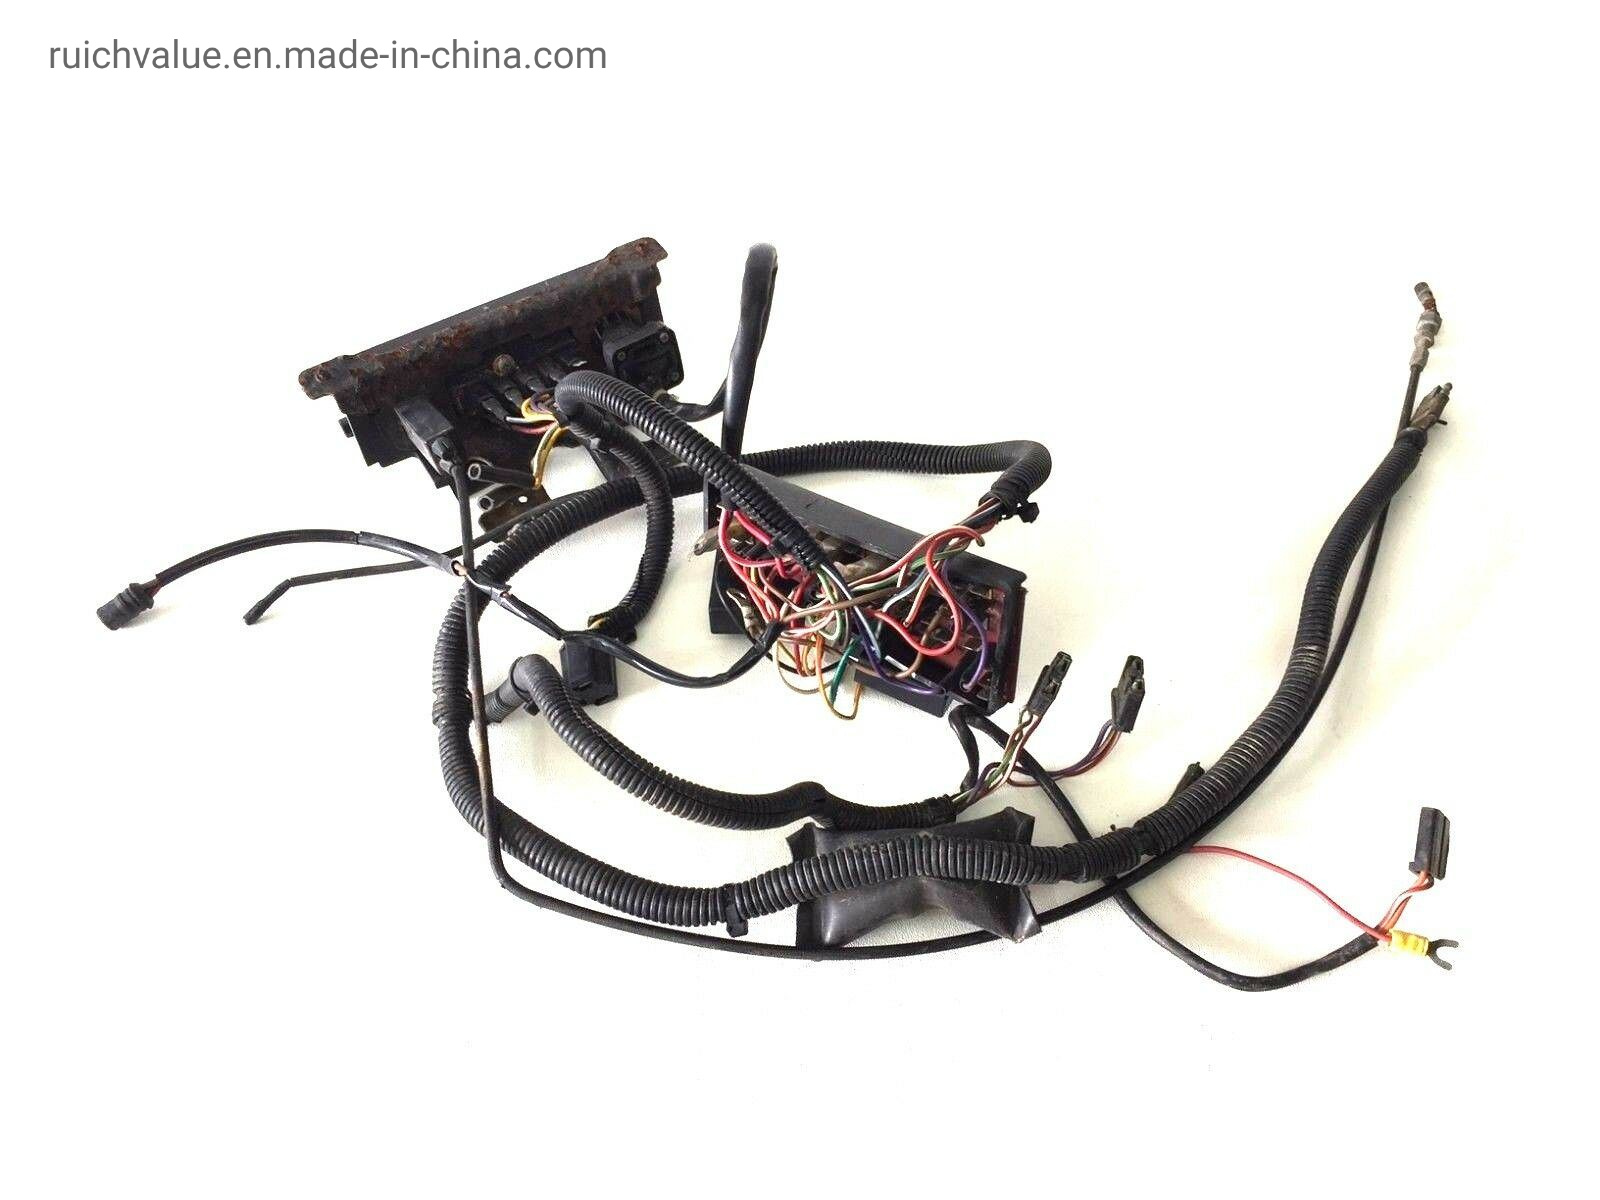 7 Pole Trailer Wiring Diagram from image.made-in-china.com